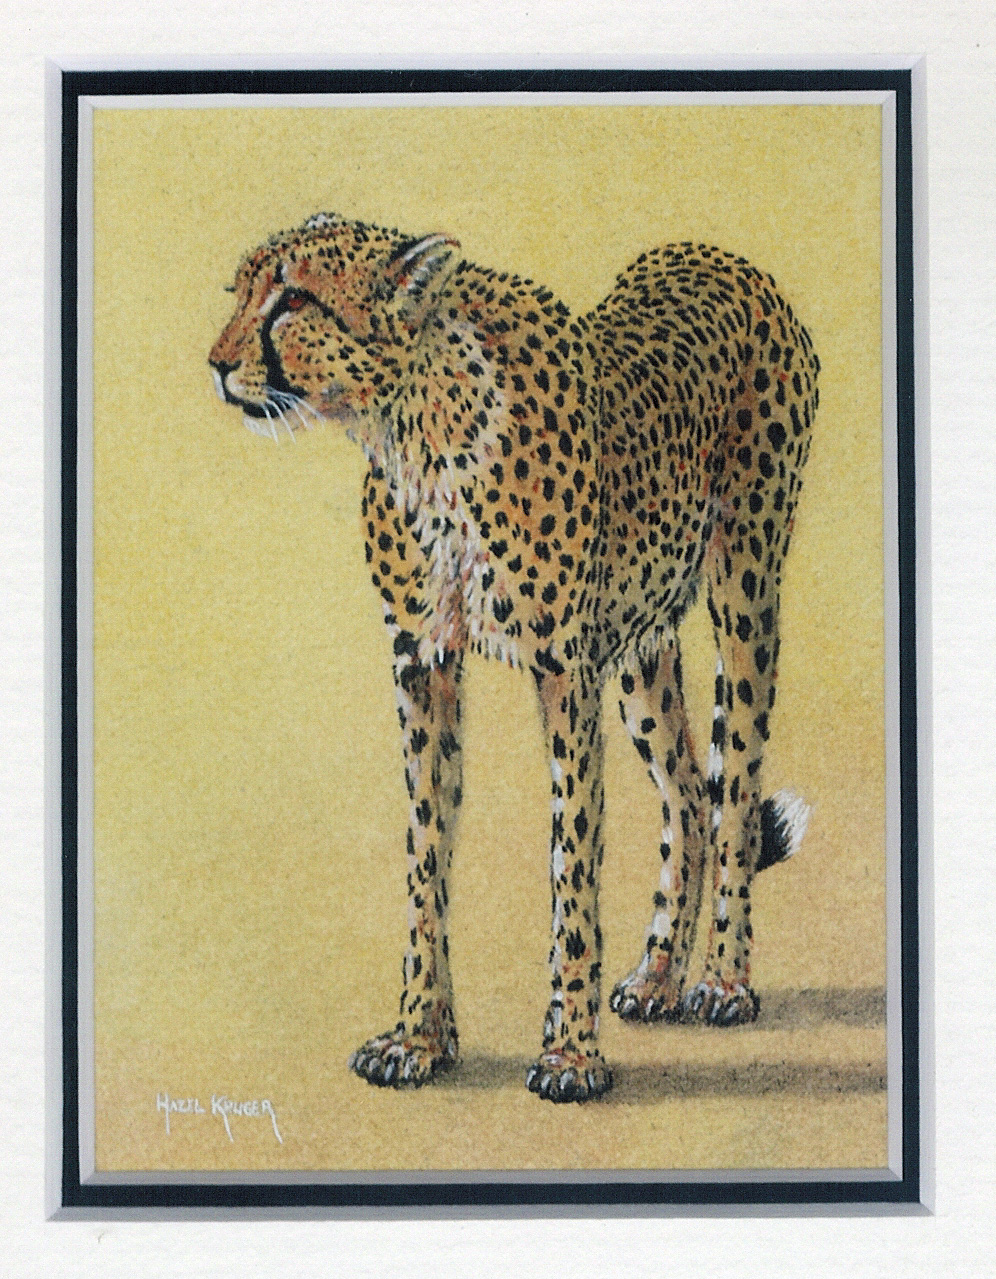 42 Cheetah by Hazel Kruger - Watercolour